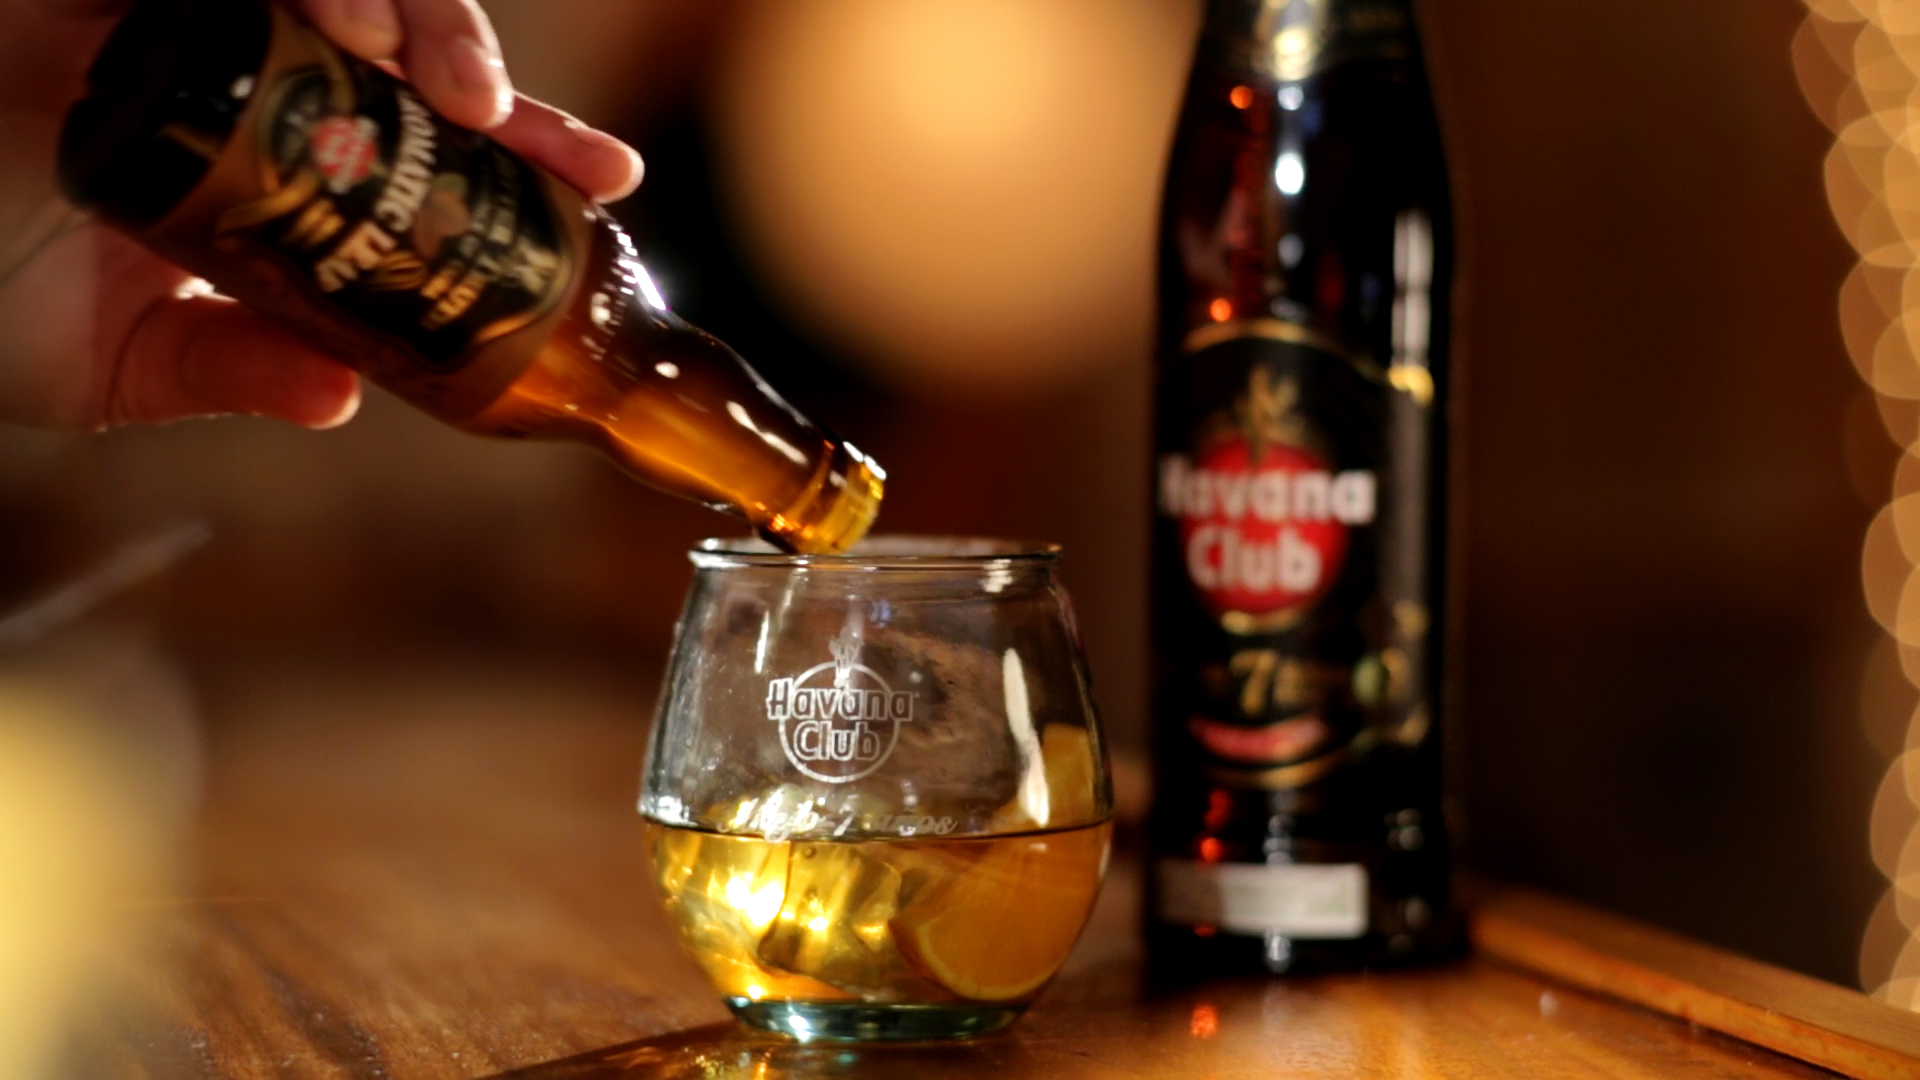 The Essence of Cuba by Havana Club